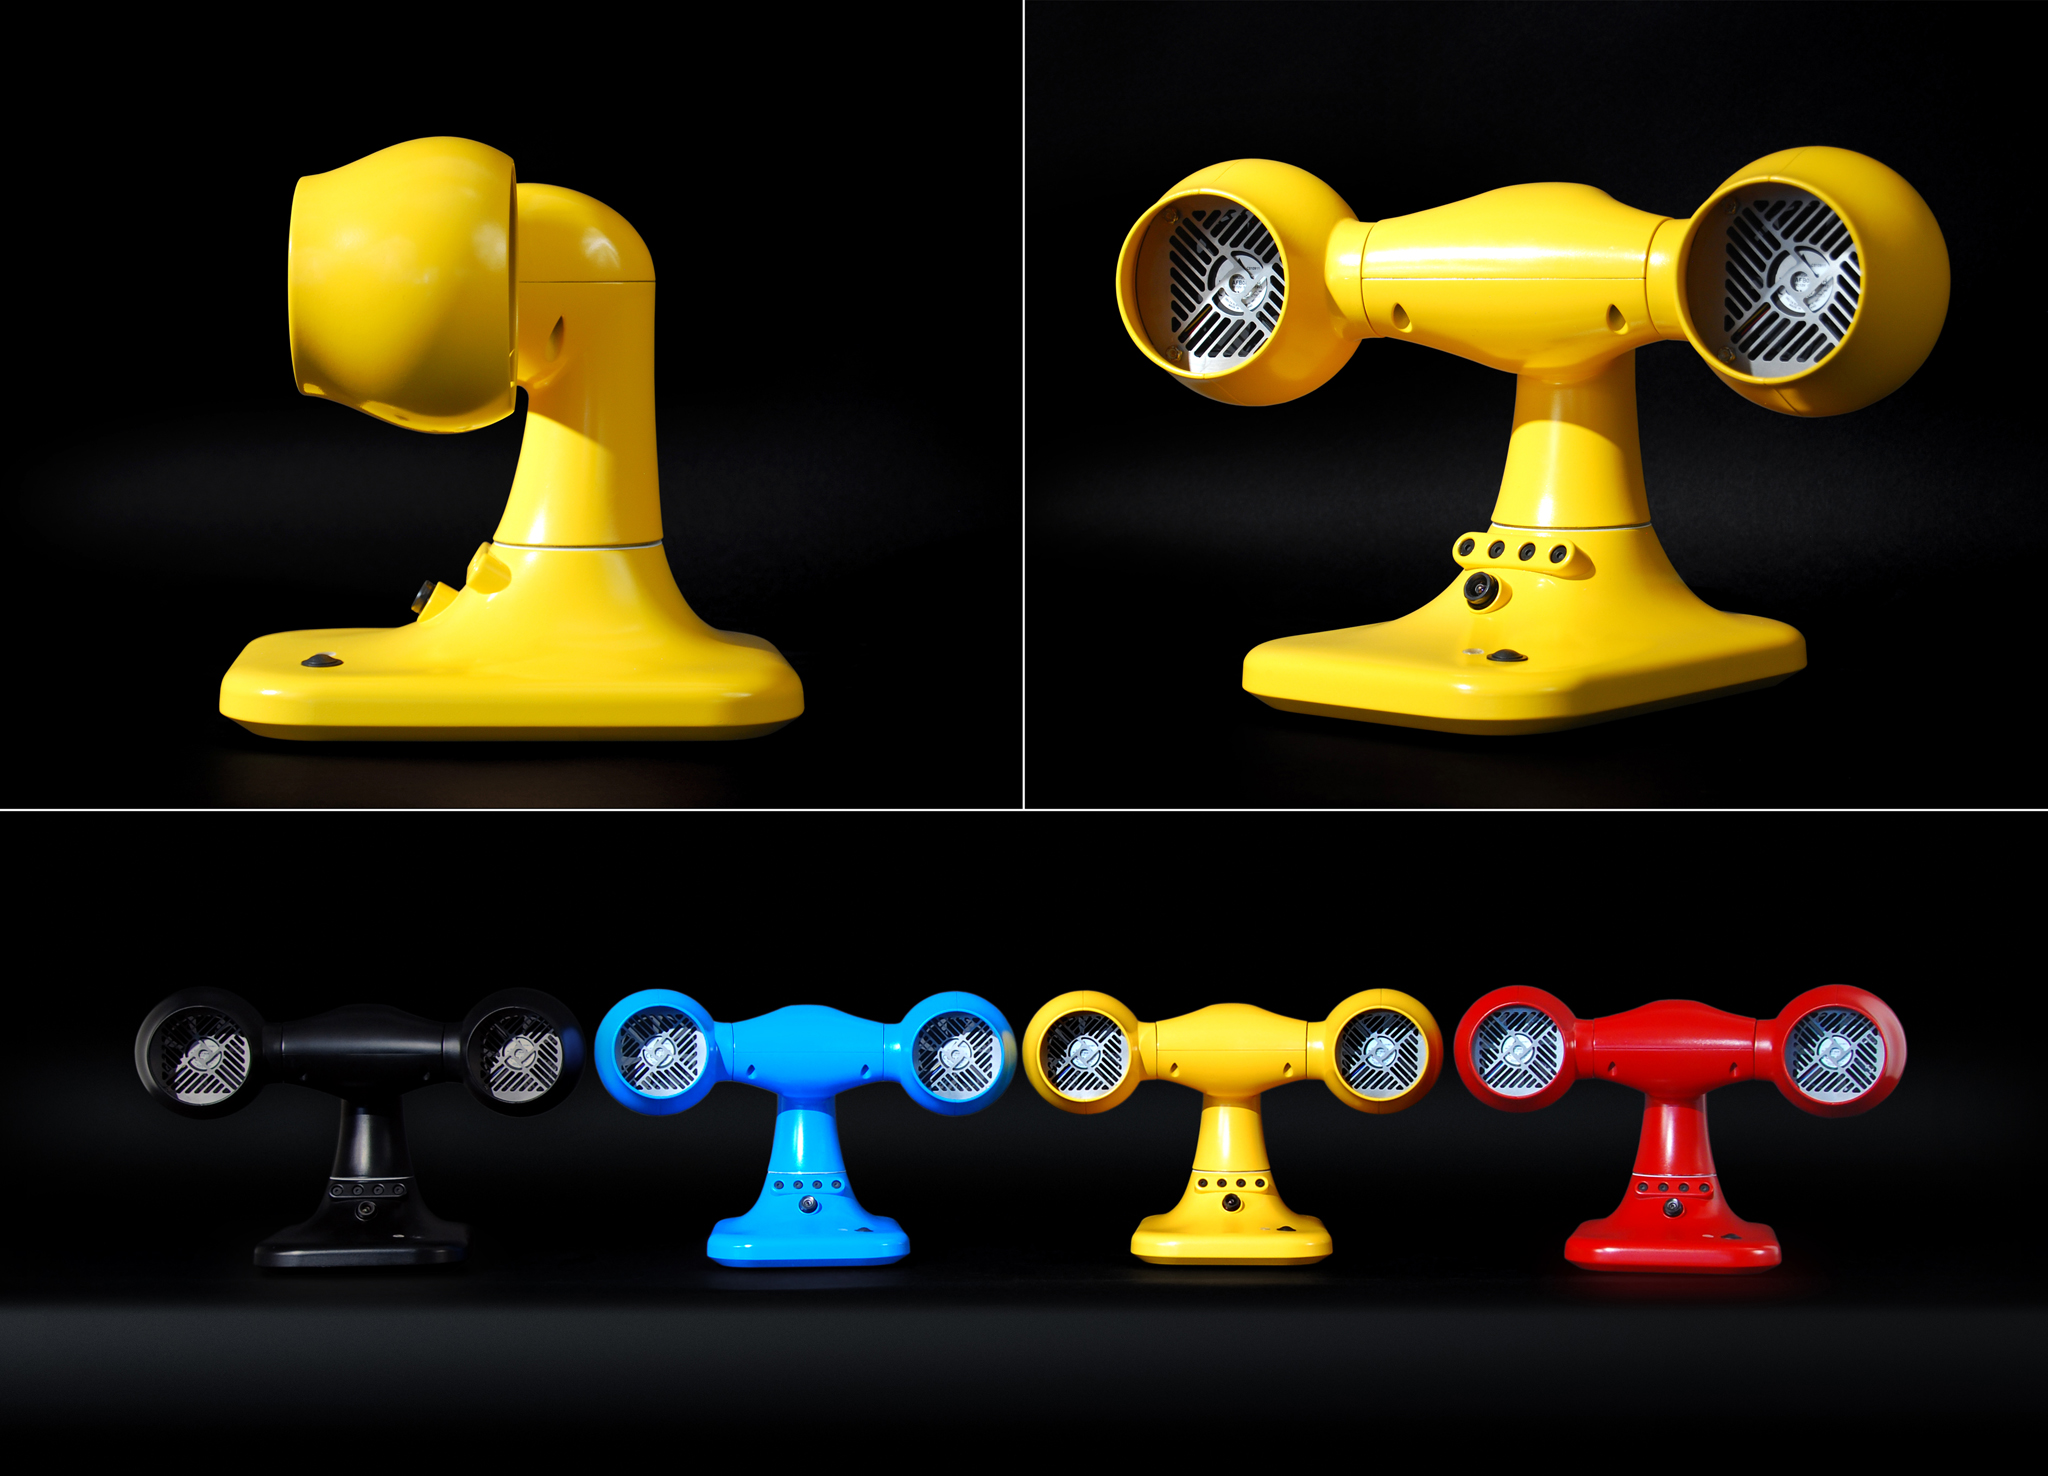 Four working prototypes have been built (Black, Blue, Yellow, and Red).